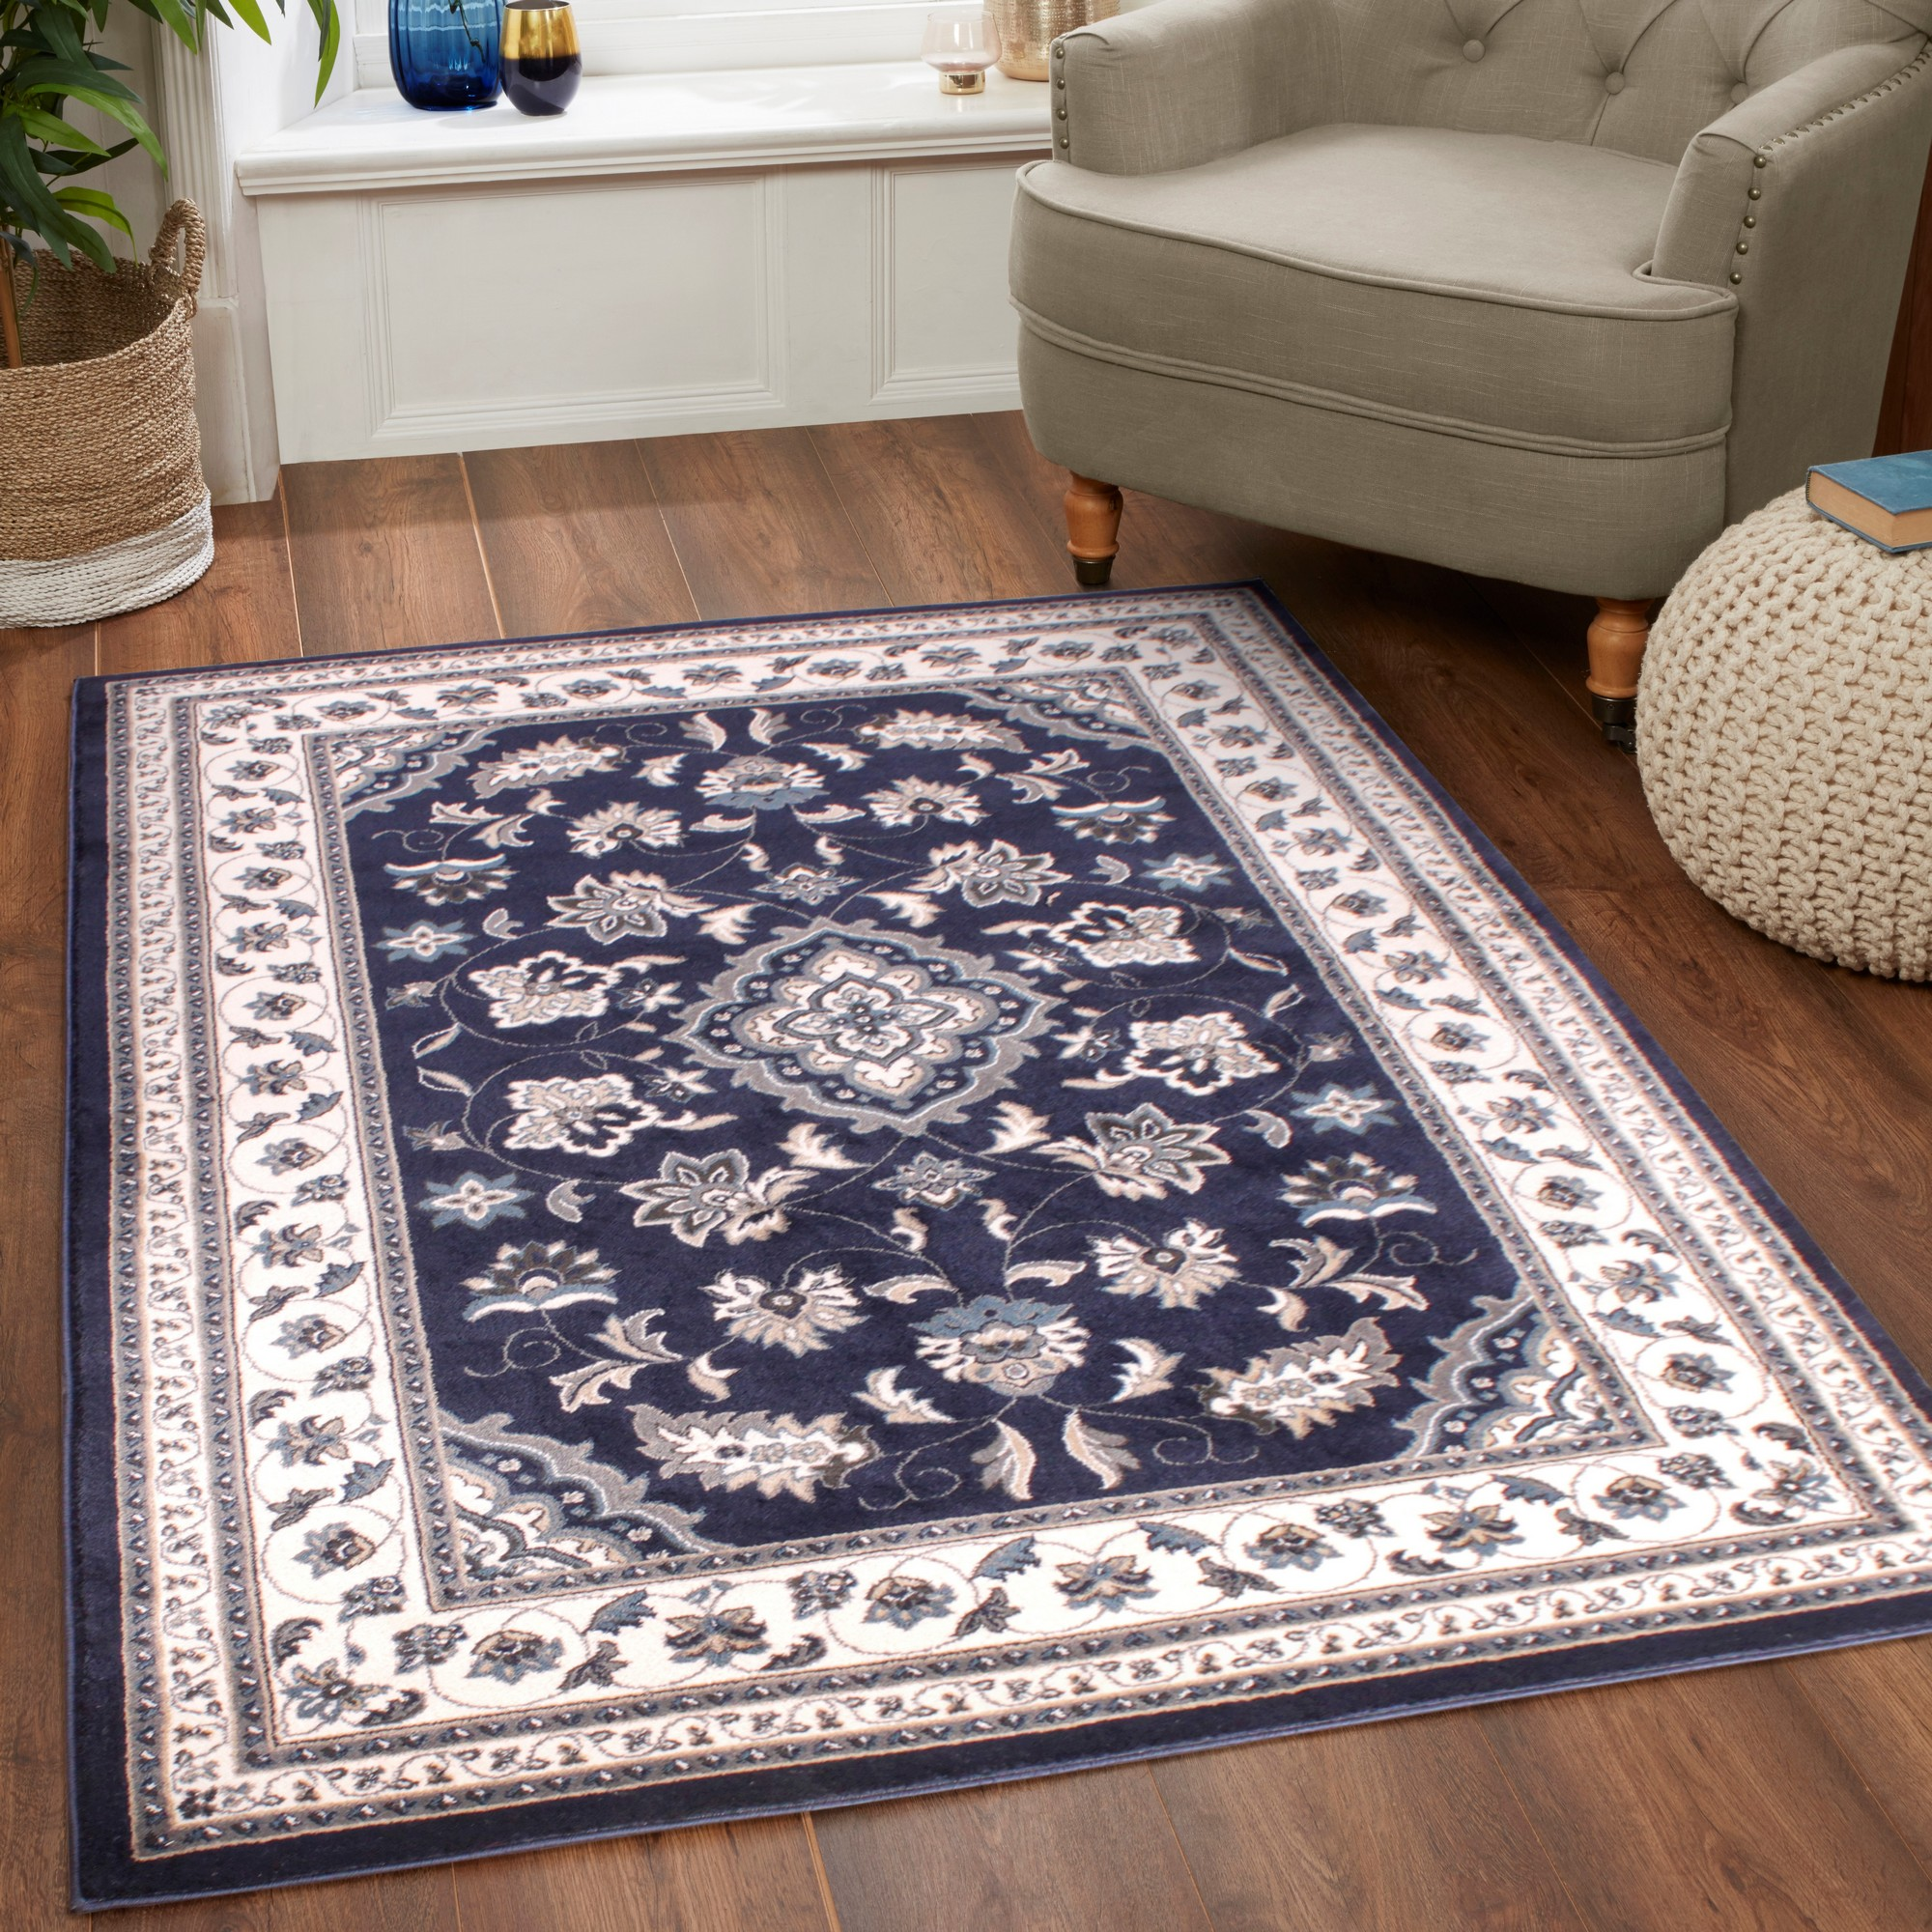 Sherborne Traditional Rugs in Navy Blue